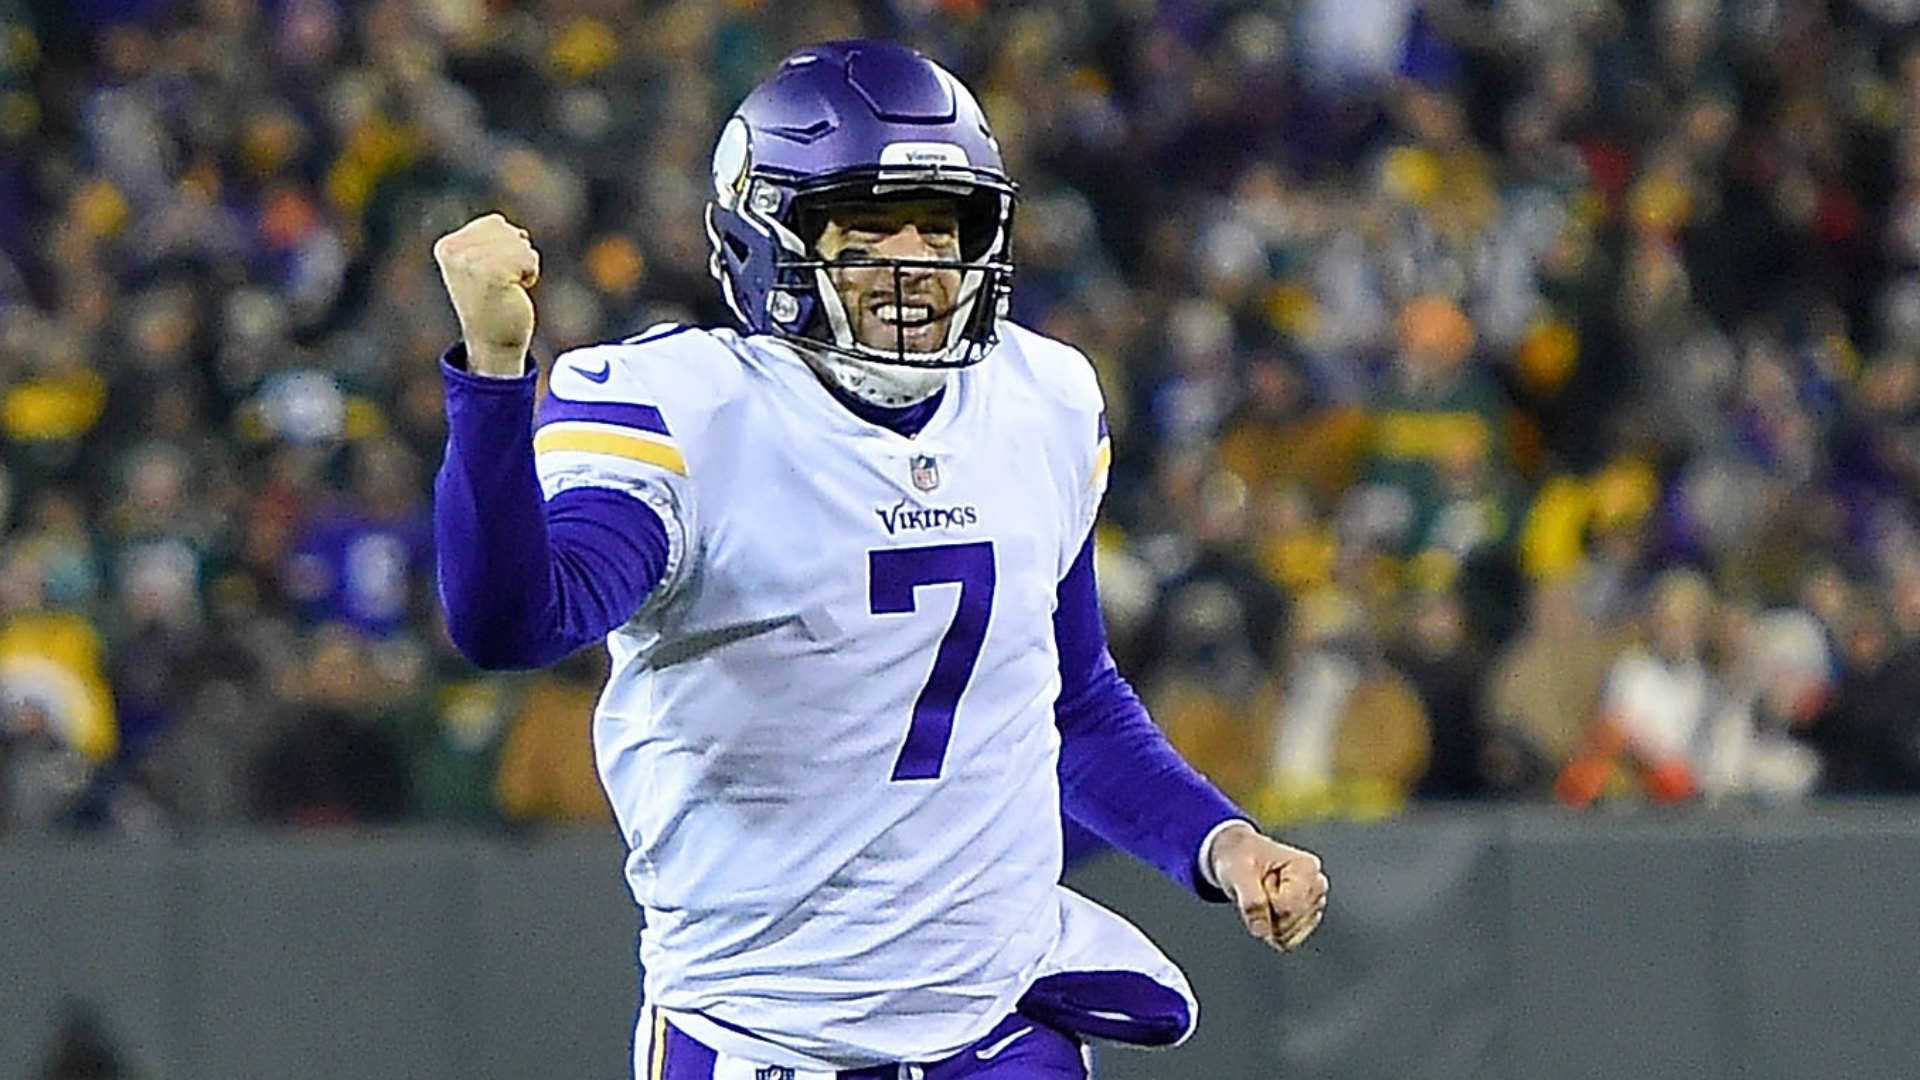 Three takeaways from Vikings' win over Packers   NFL   Sporting News